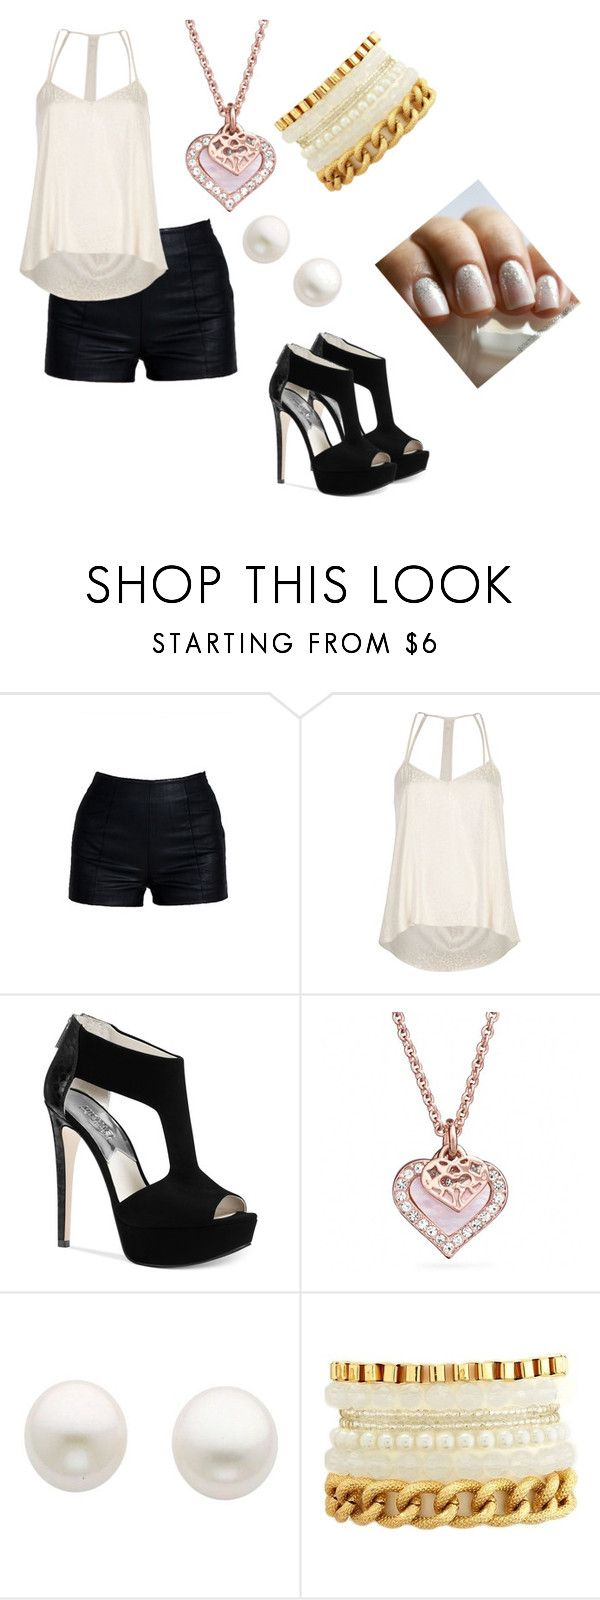 """""""Happy New Year ;D"""" by vick-bieber ❤ liked on Polyvore featuring Lush Clothing, River Island, Michael Kors, Coach, Reeds Jewelers and Charlotte Russe"""